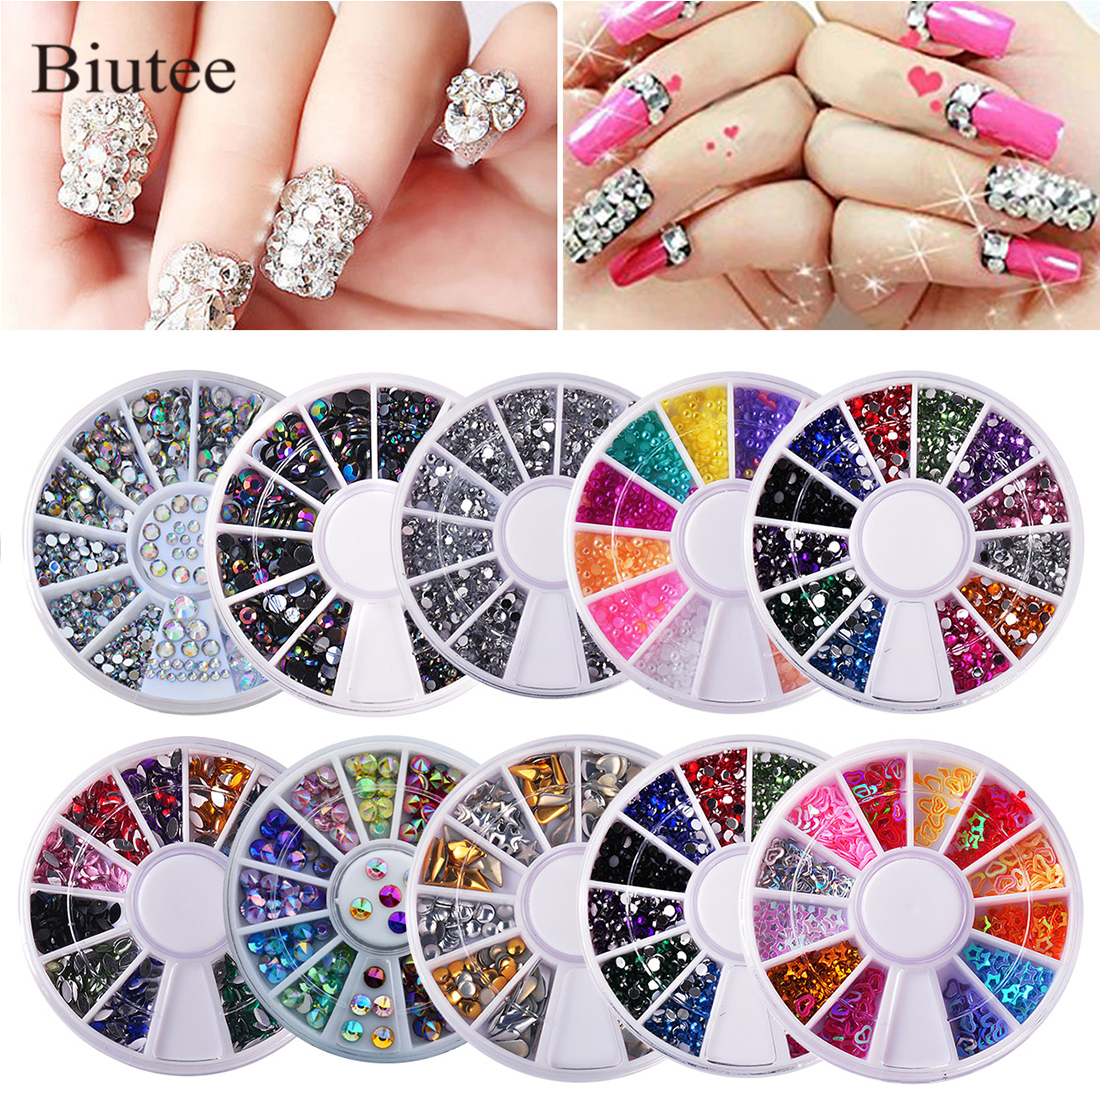 Biutee 10pcs/set  Nails Decoration Nail Art  Diamond Boxes Shiny Diamonds Acrylic Box Various Colors Nail Decoration Kit Nail 3D